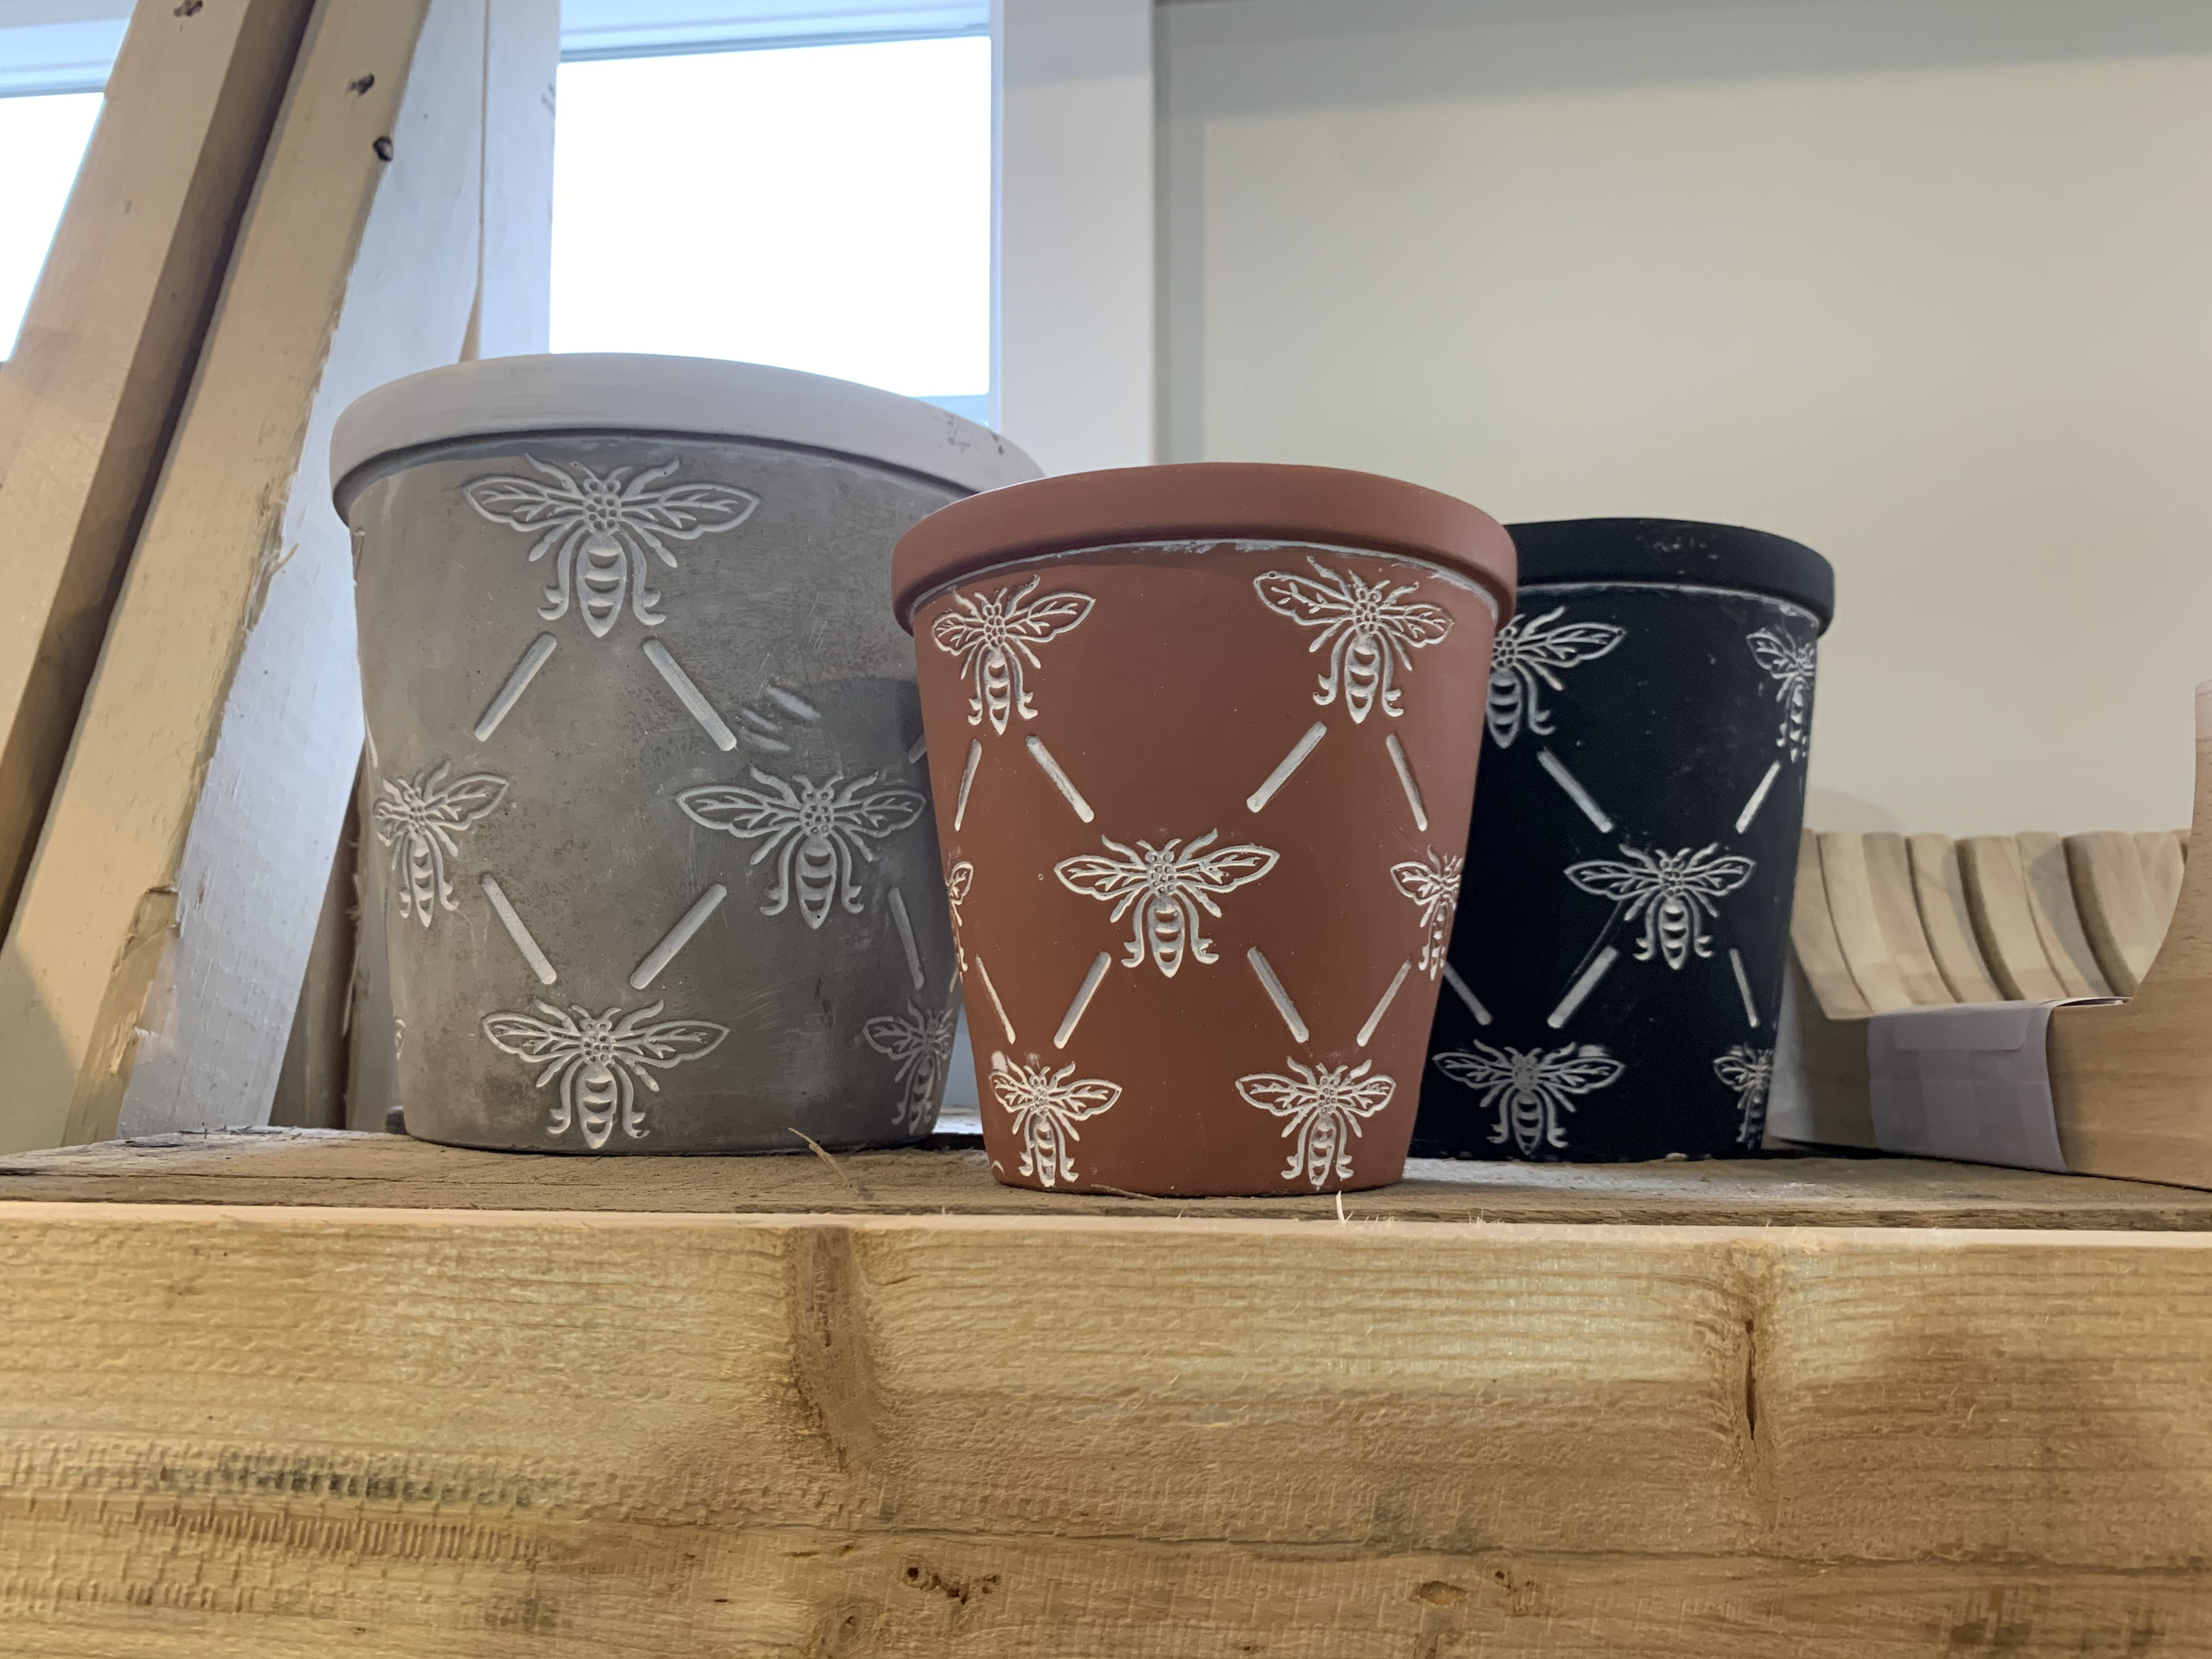 Featuring unique, eye-catching pottery based out of Omaha, NE